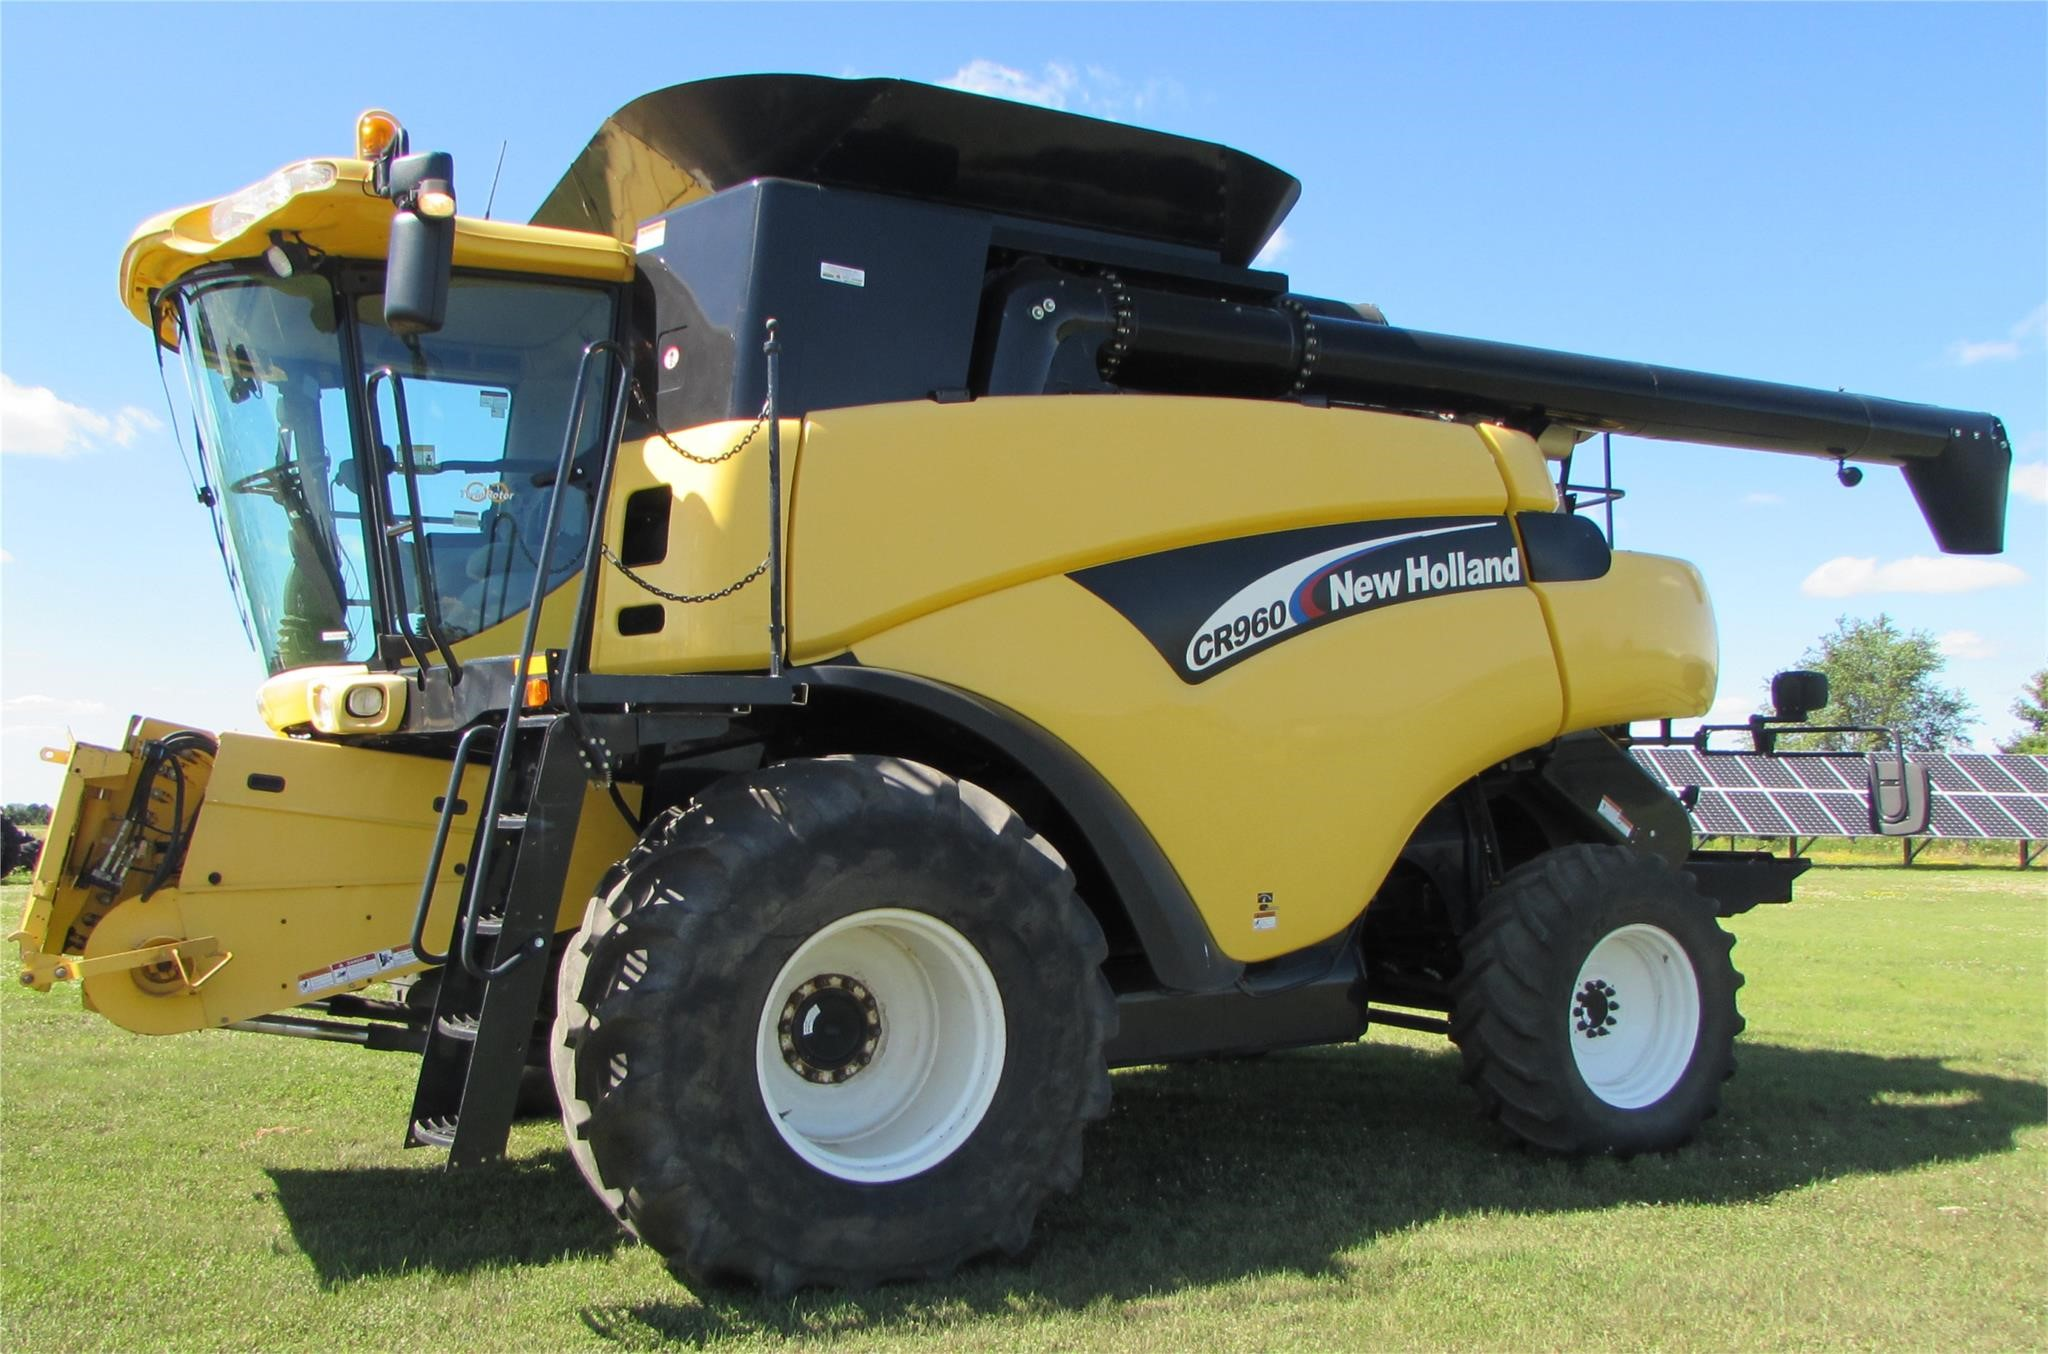 2003 New Holland CR960 Combine